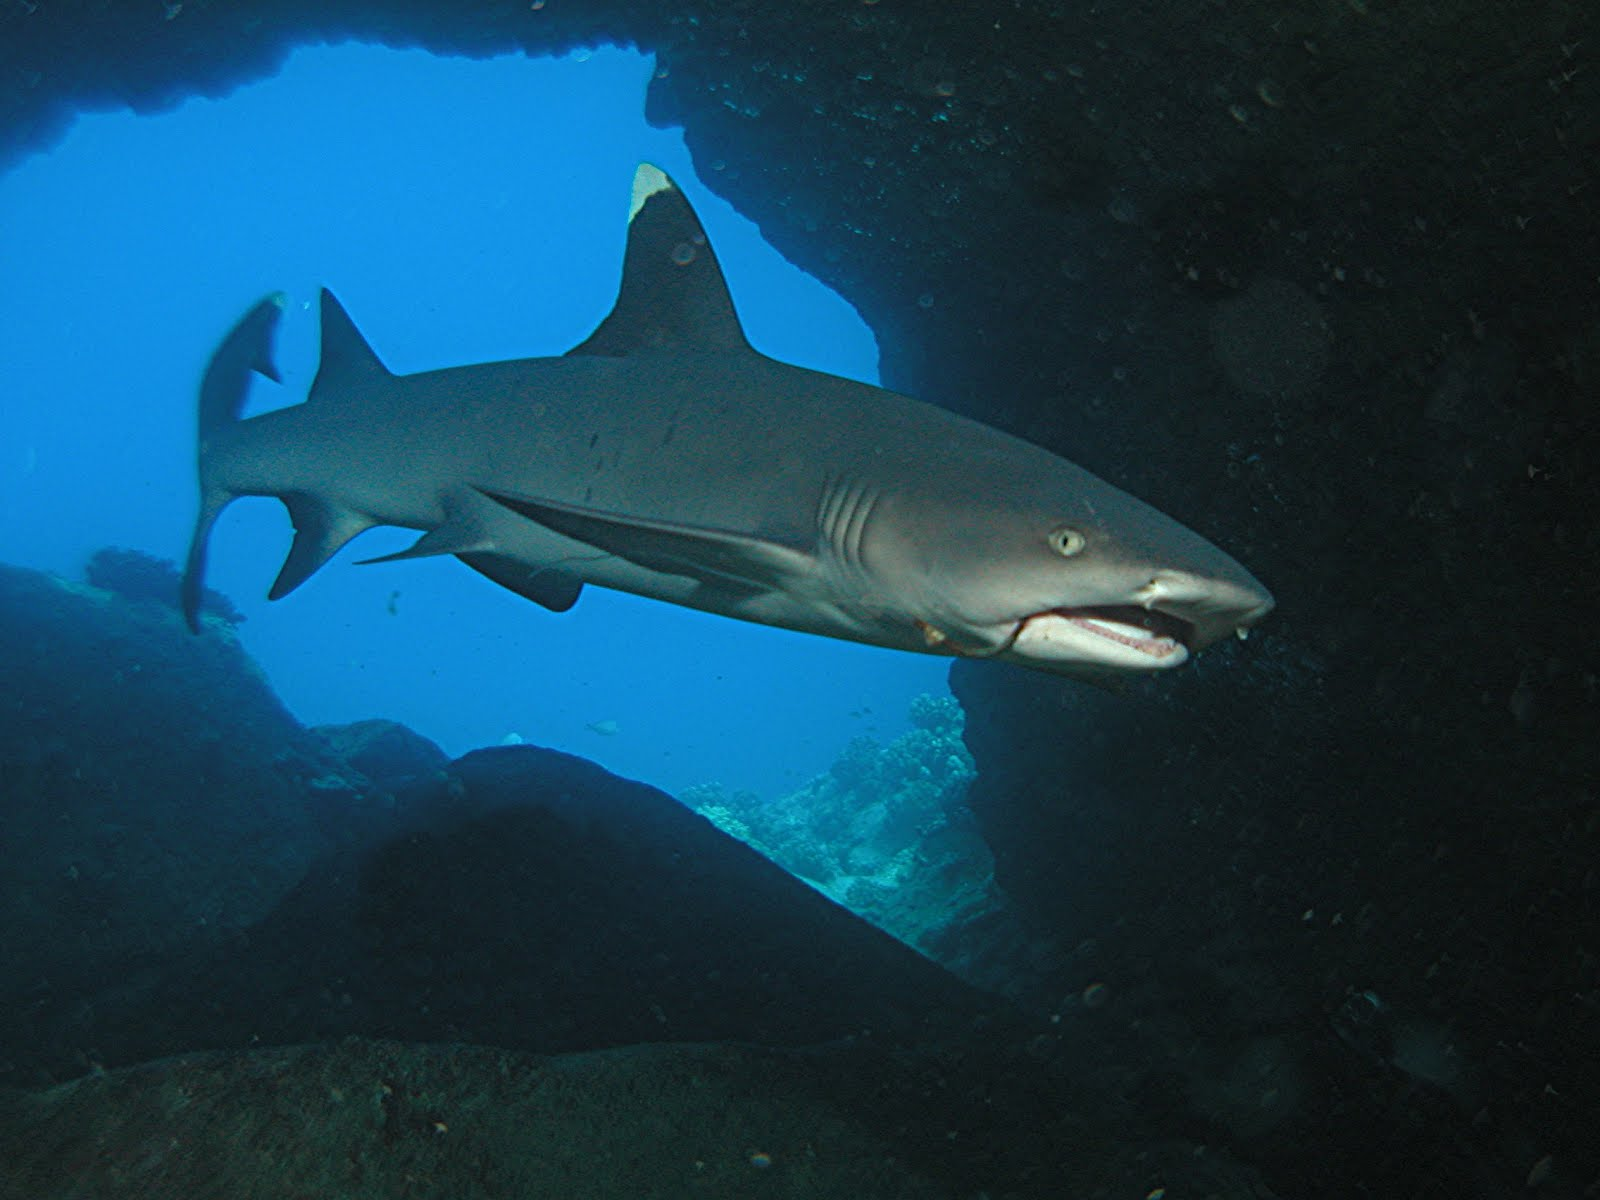 Whitetip reef shark in the gorge wallpaper